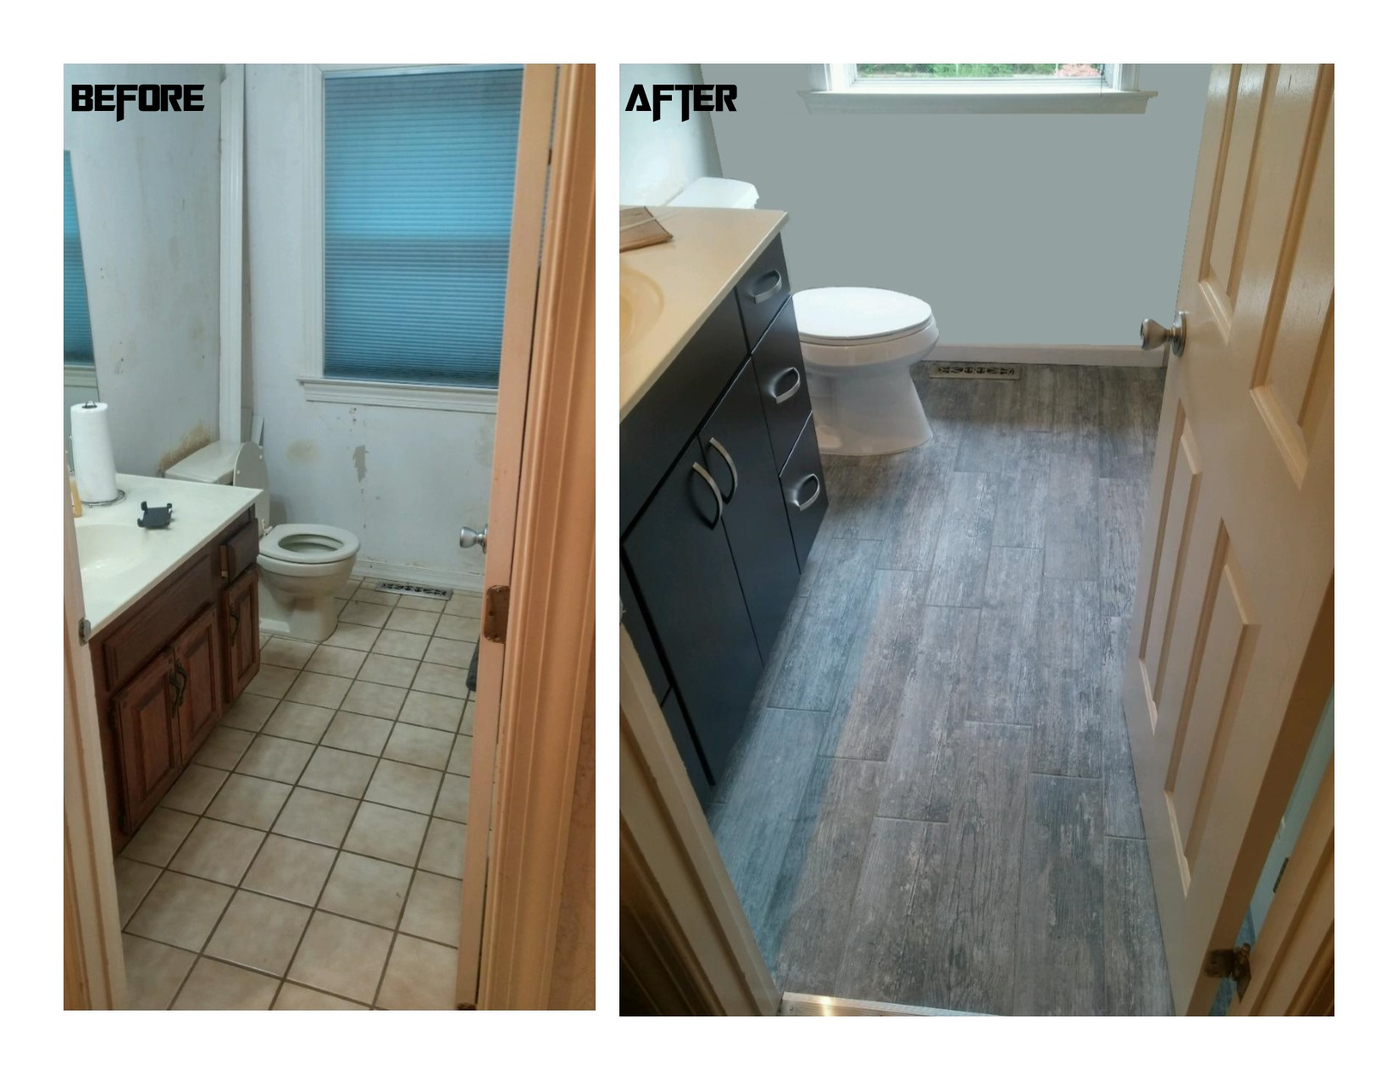 Total Bath Transformations - Bathtub & Shower Replacement, Bathroom ...